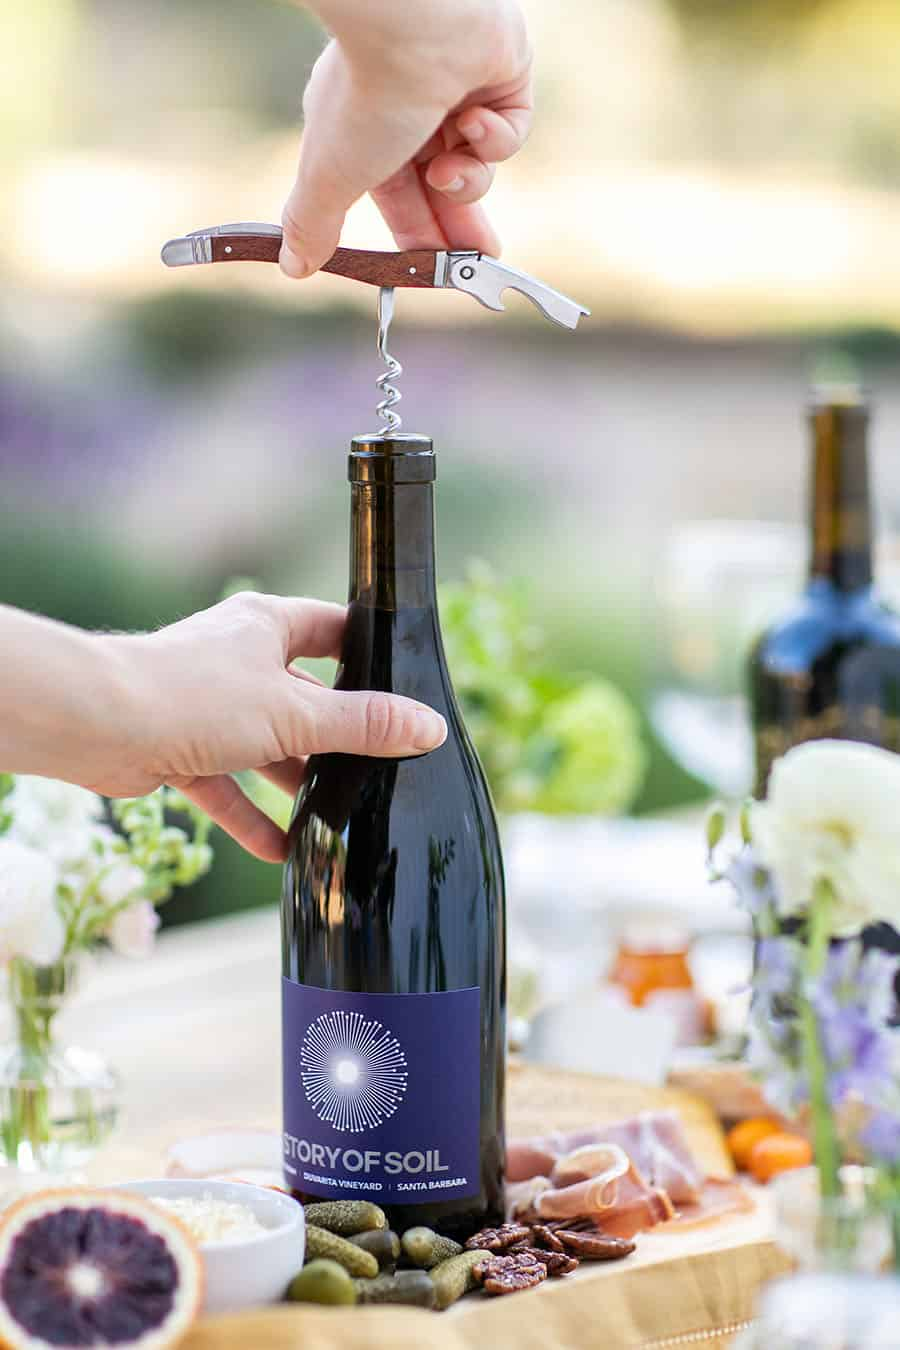 Hand opening a wine bottle with a corkscrew opener.